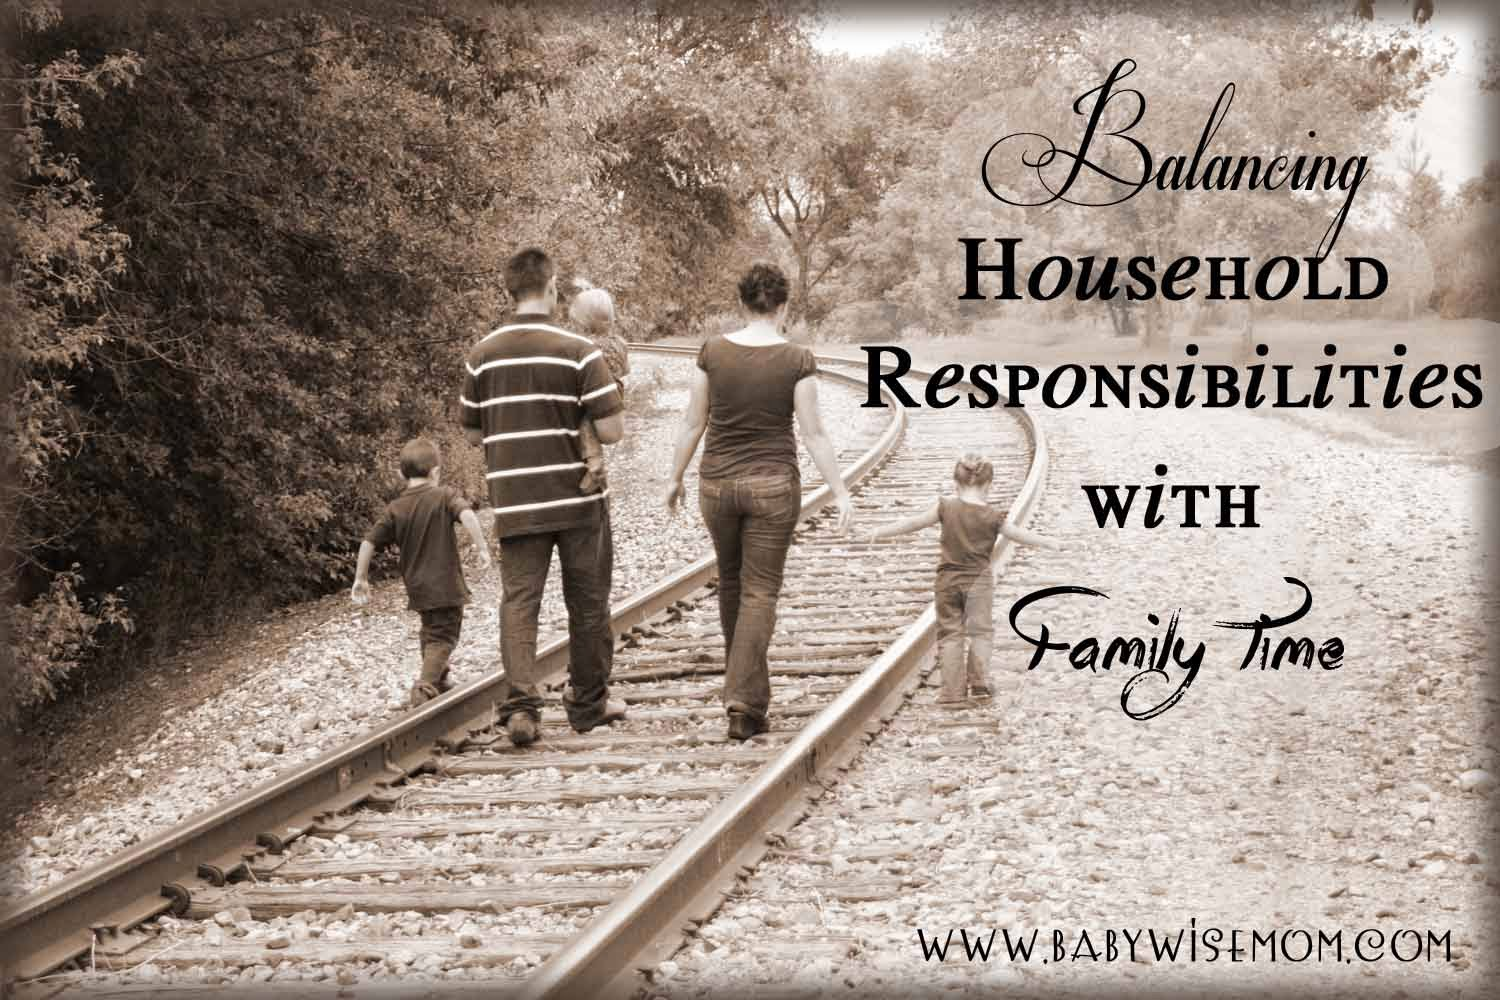 Balancing Household Responsibilities with Family Time